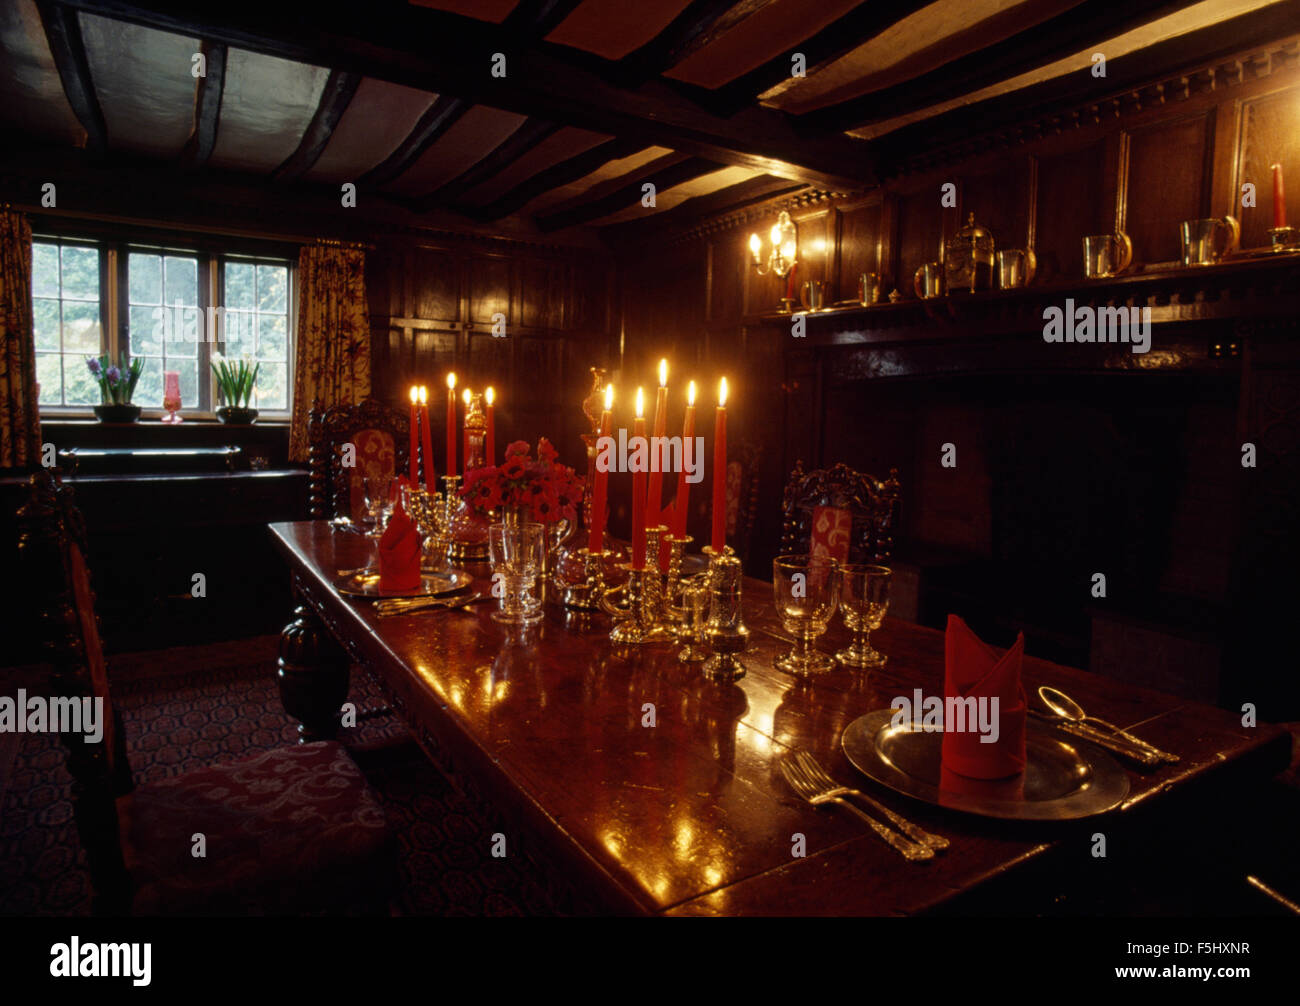 Glassware and lighted candles on table in Tudor style dining room - Stock Image